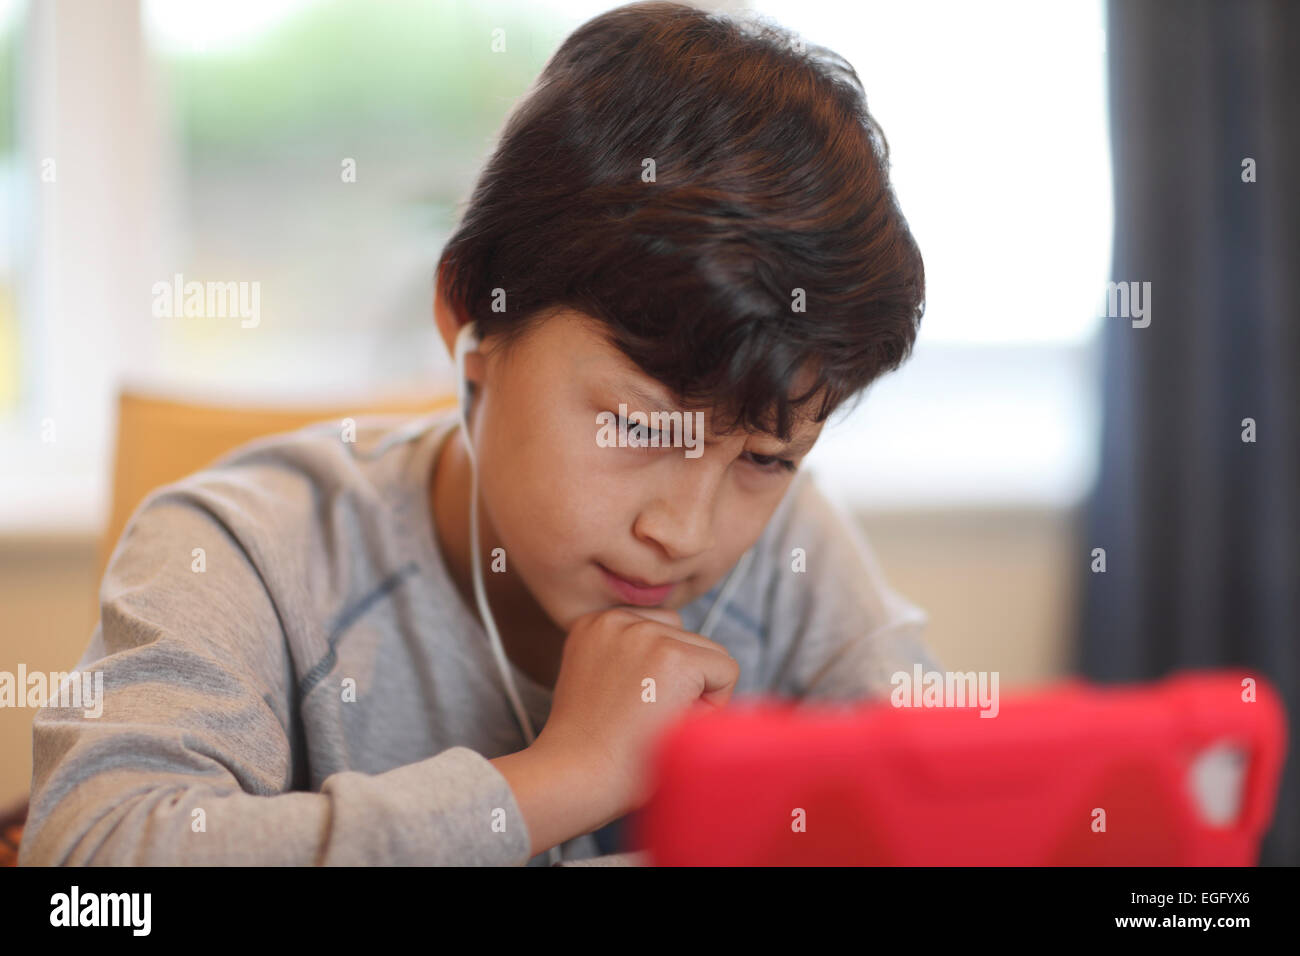 Young frowning boy playing with tablet computer - Stock Image